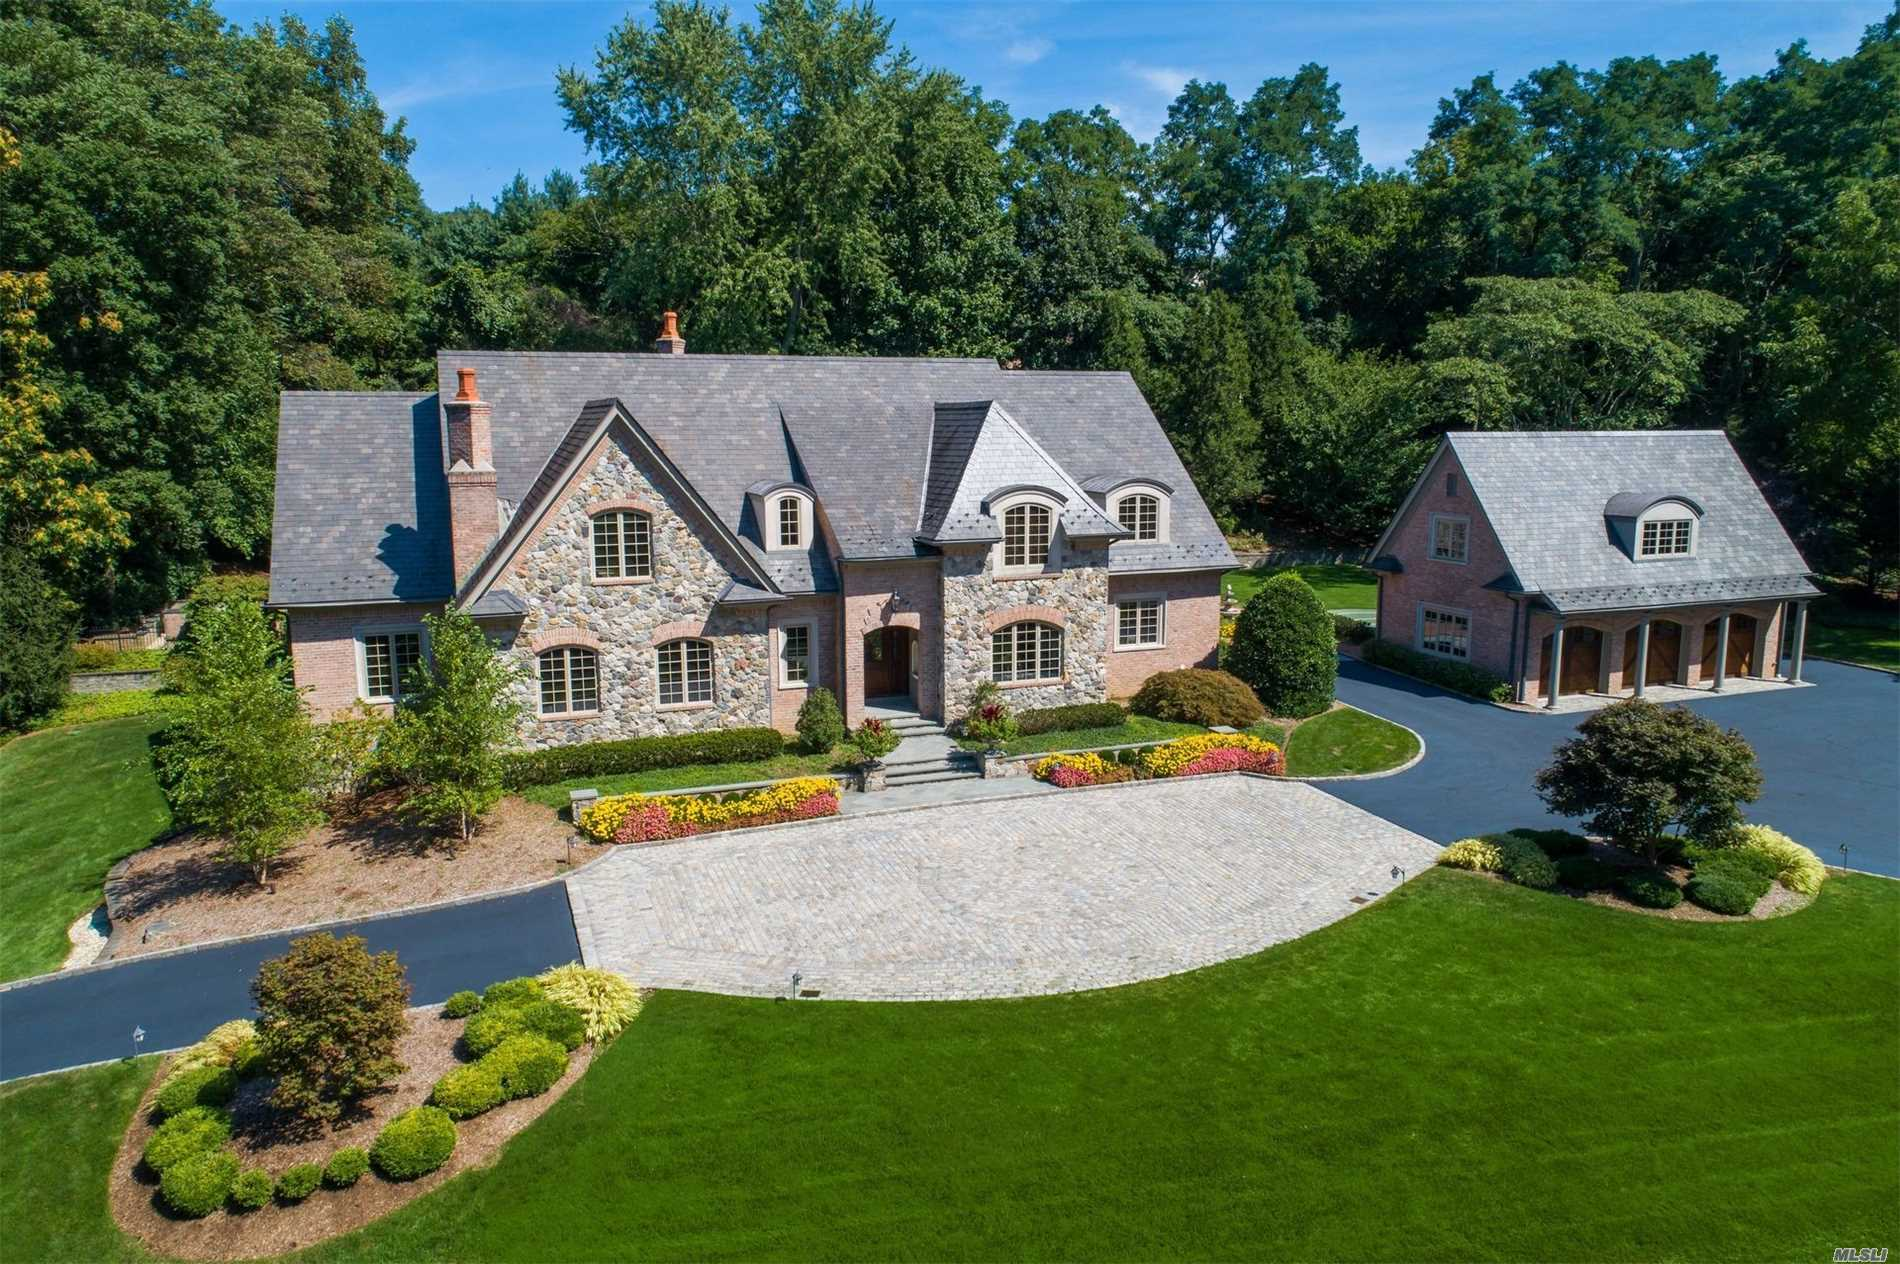 Spectacular Estate-Like Residence Built in 2004 Offers Quality Design And Fine Finishes. Enjoy Country Club Living In This Stunning 6 Bedroom 7.55 Bath Home. Grand 2-Story Entry, Spacious Floor Plan, 10' Ceilings, Mahogany Study, Formal Dining, Butlers Pantry, Gourmet Kitchen, Great Rm With Cathedral Ceiling, Living Rm With French Doors Lead To Covered Porch, Heated Pool, Outdoor Bth, Slate Roof, Copper Gutters, 3 Fireplaces, Radiant Heat, CVAC. Bonus Area Over Garage Beach/Mooring/Camp CSH SD#2